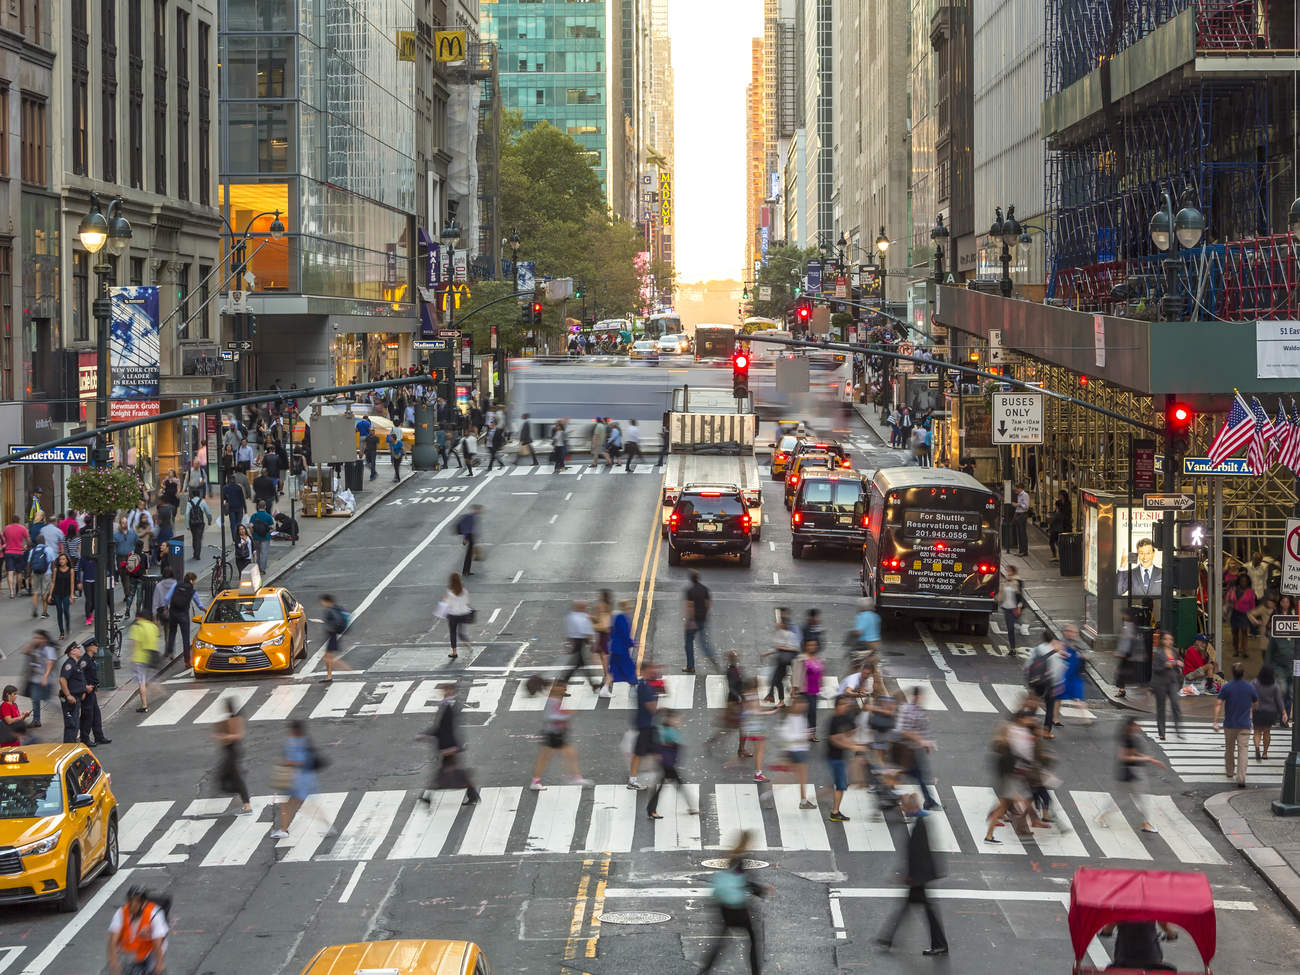 Busy avenue, Central Manhattan, New York City